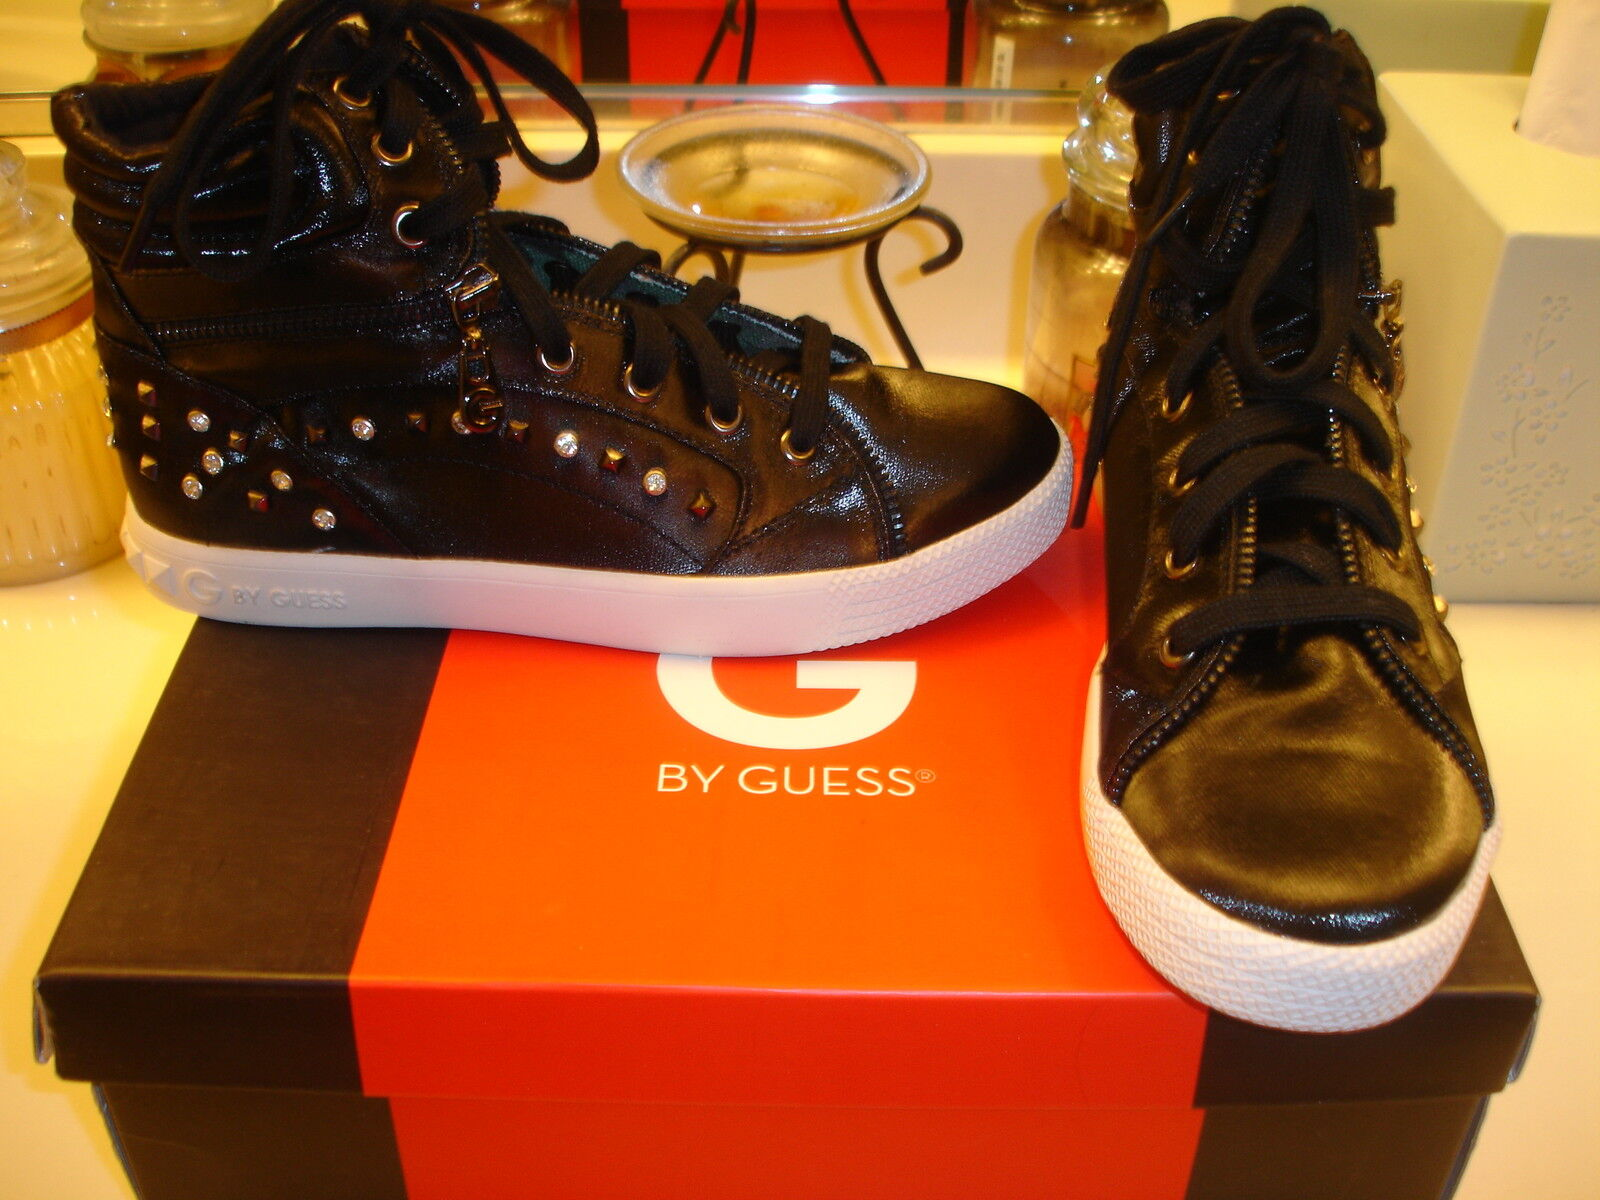 G By Guess Noir Fabric Monty2 Studded Chaussures 6 6.5 Comfortable styllish  90